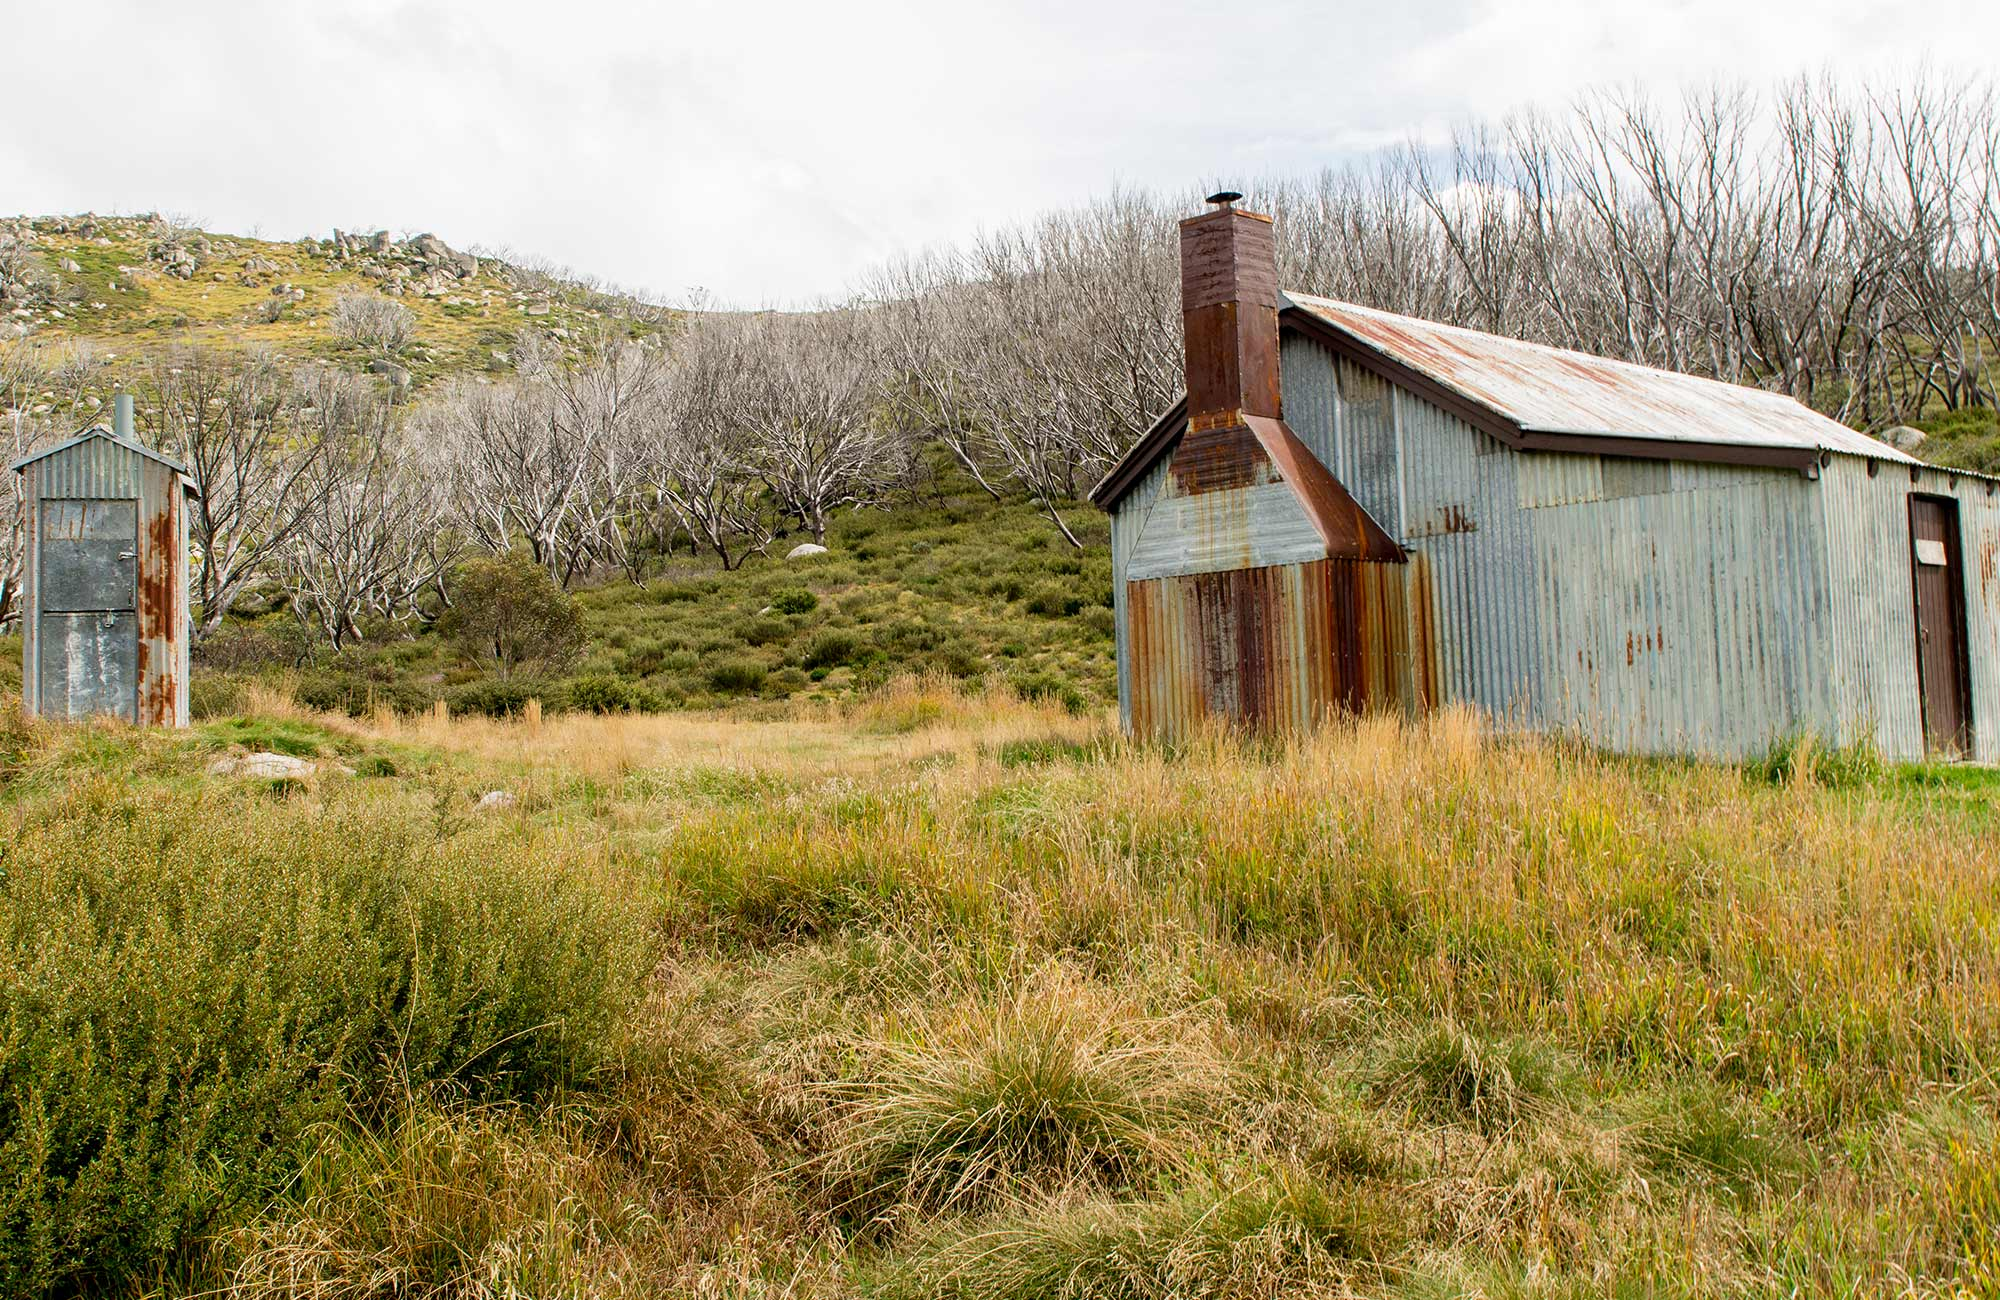 Exterior of White's River Hut along Schlink Hut walking track, Kosciuszko National Park. Photo: John Spencer/OEH